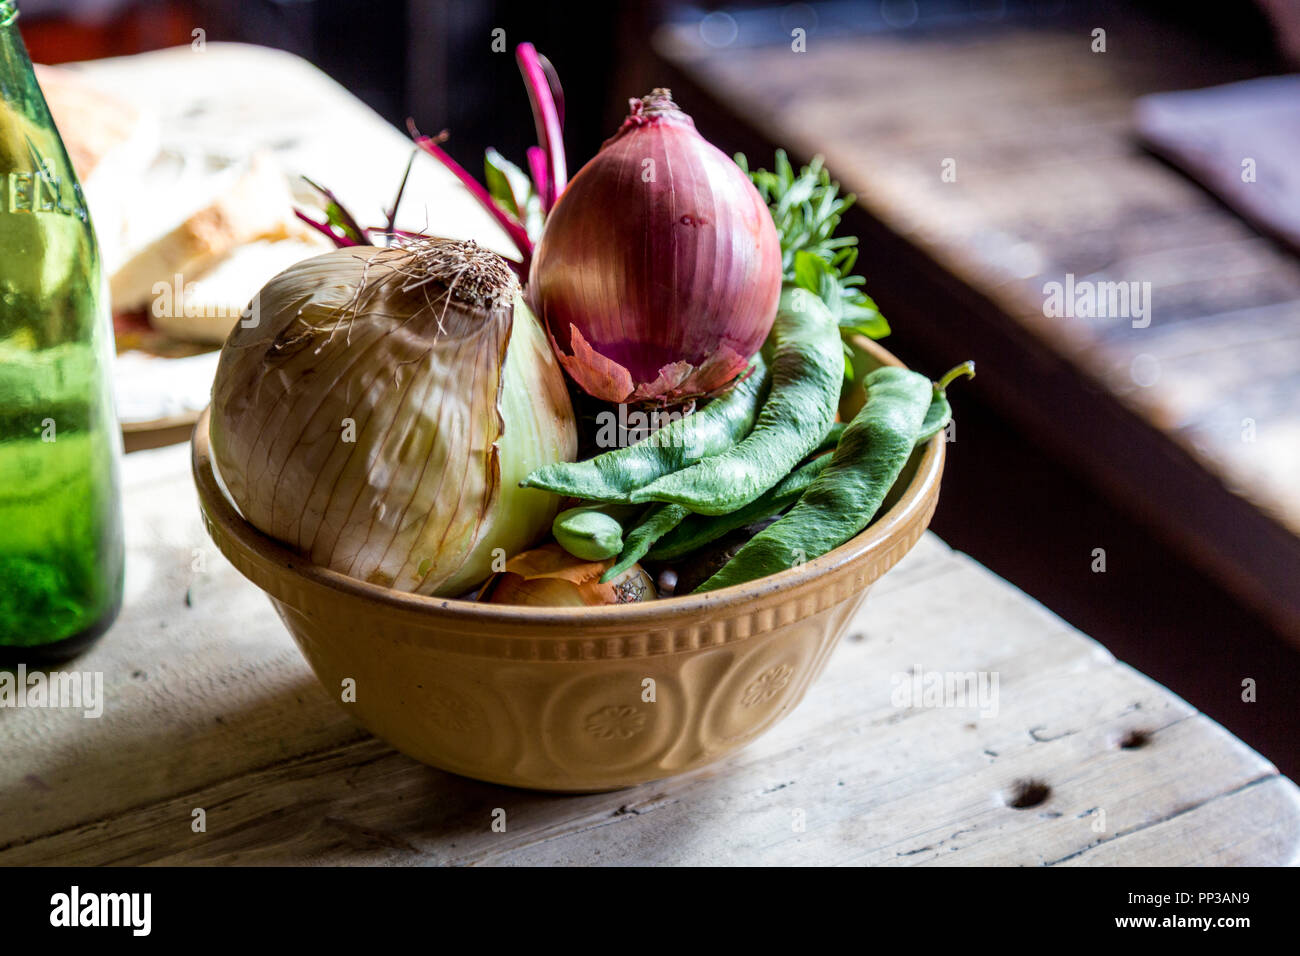 Rustic bowl of vegetables, onions and beans on a wooden table in an old-fashioned kitchen (Black Country Living Museum, Dudley, UK) - Stock Image